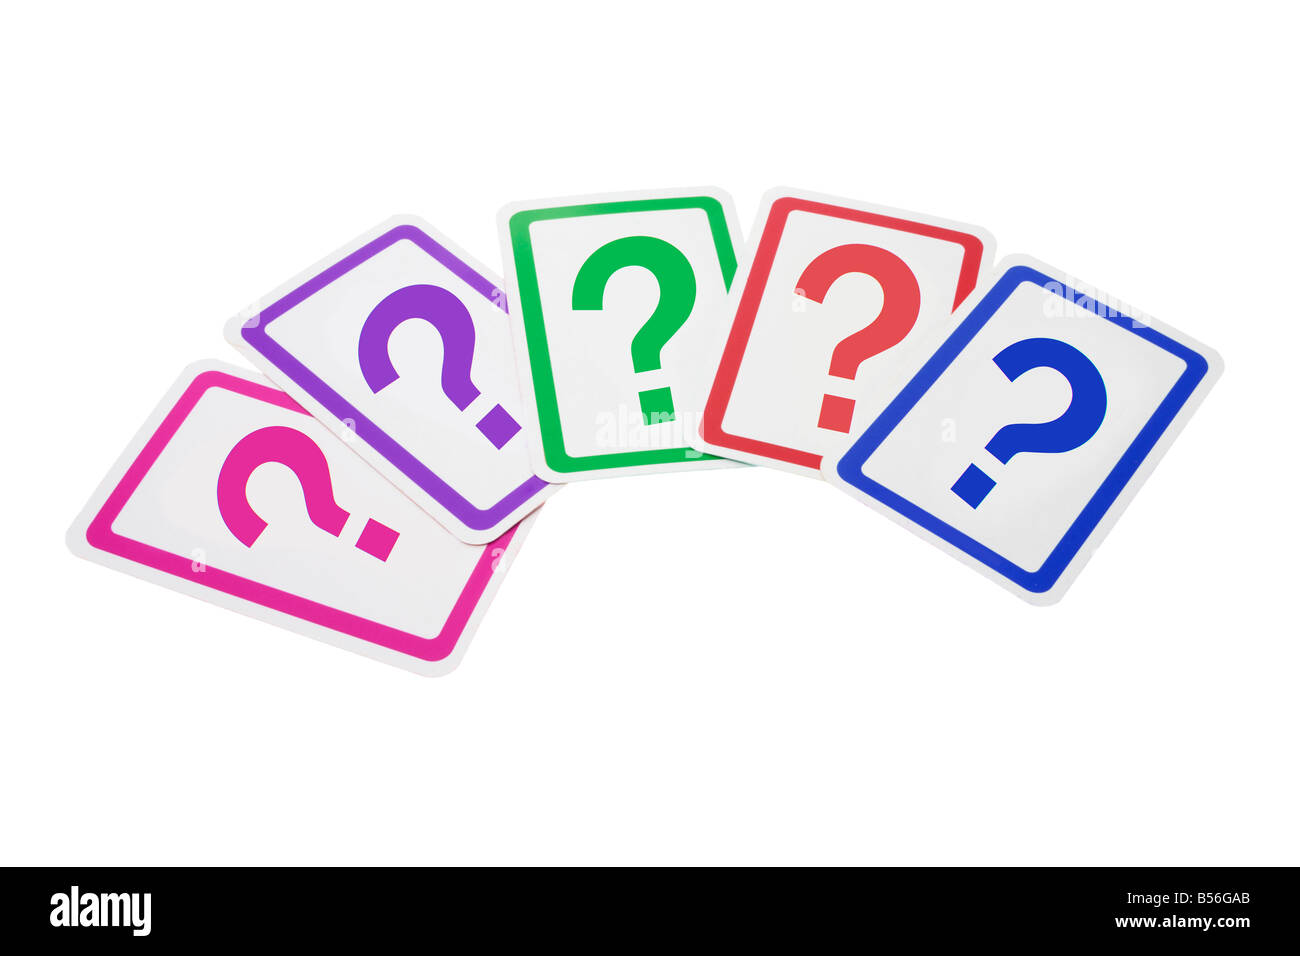 Question Mark Cards - Stock Image